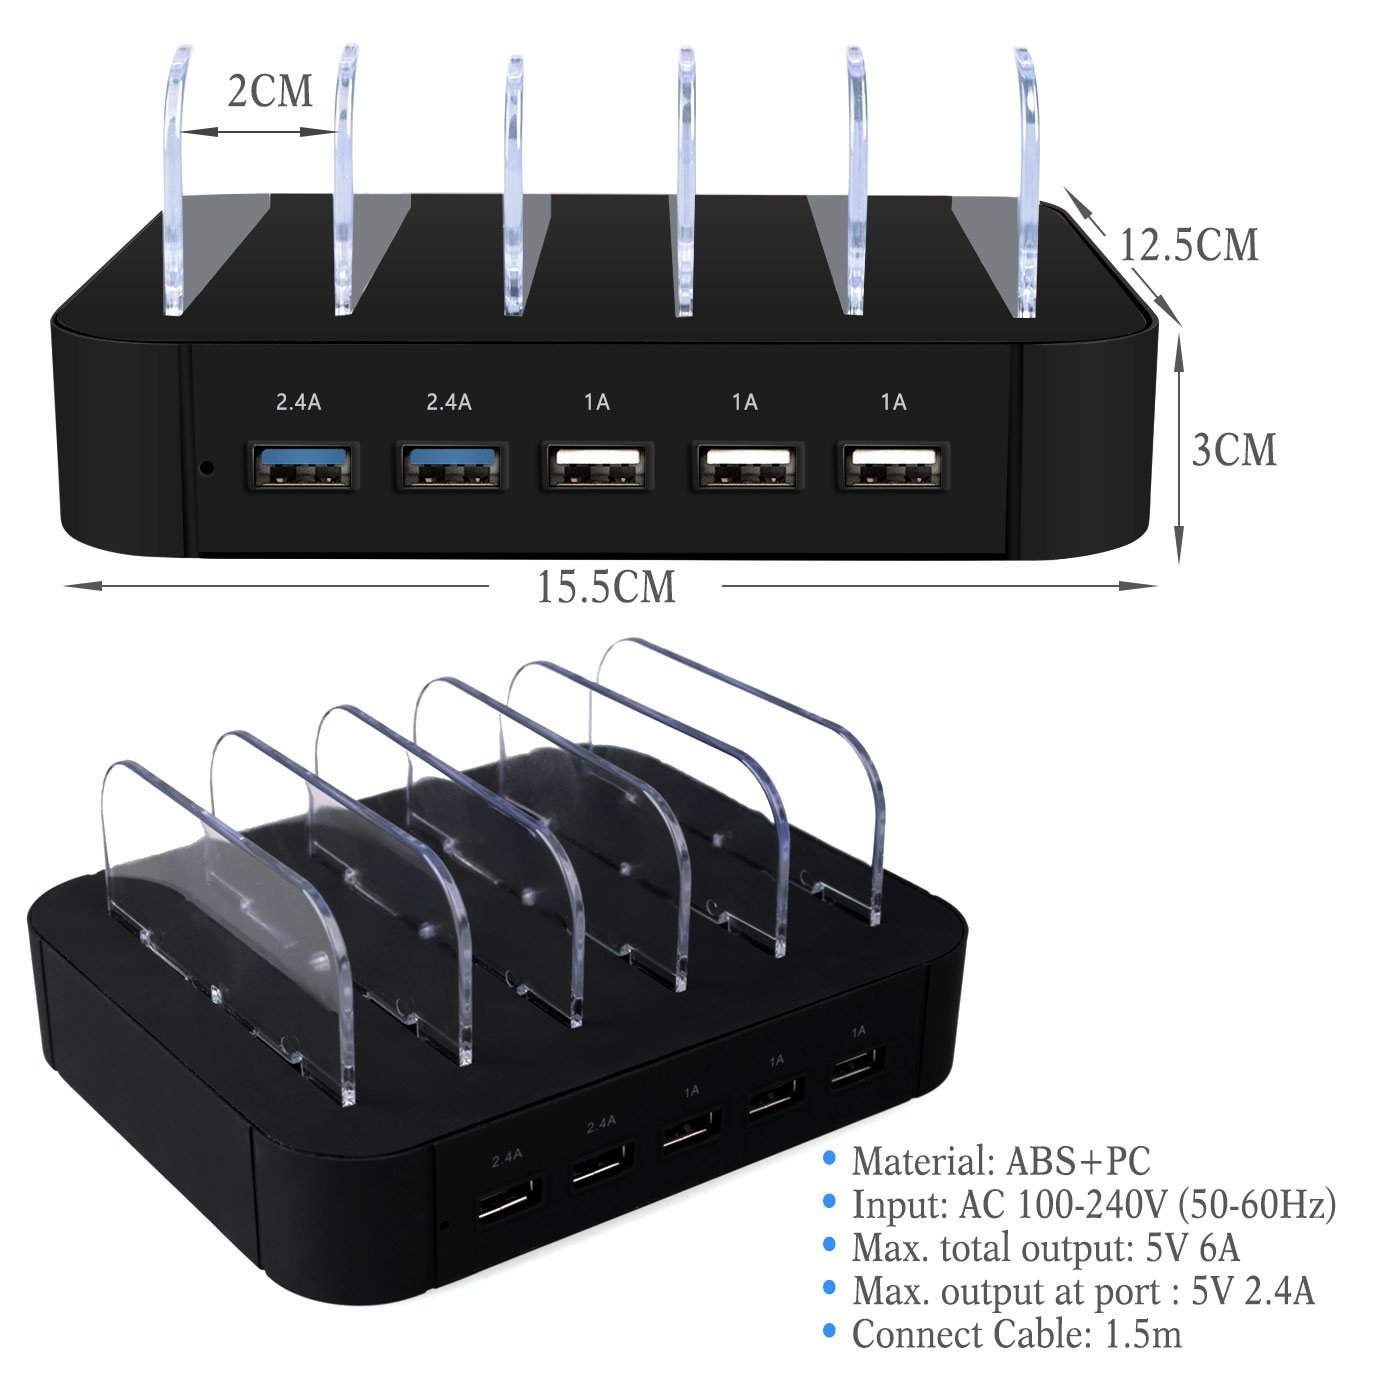 AcTopp USB Ladestation Multiport USB Universal Dockingstation Ladegerät Ladedock 5 Ports USB Ladestation gehostete Desktop Ladestation Ladeeinrichtung für Handys Tablets Kindle